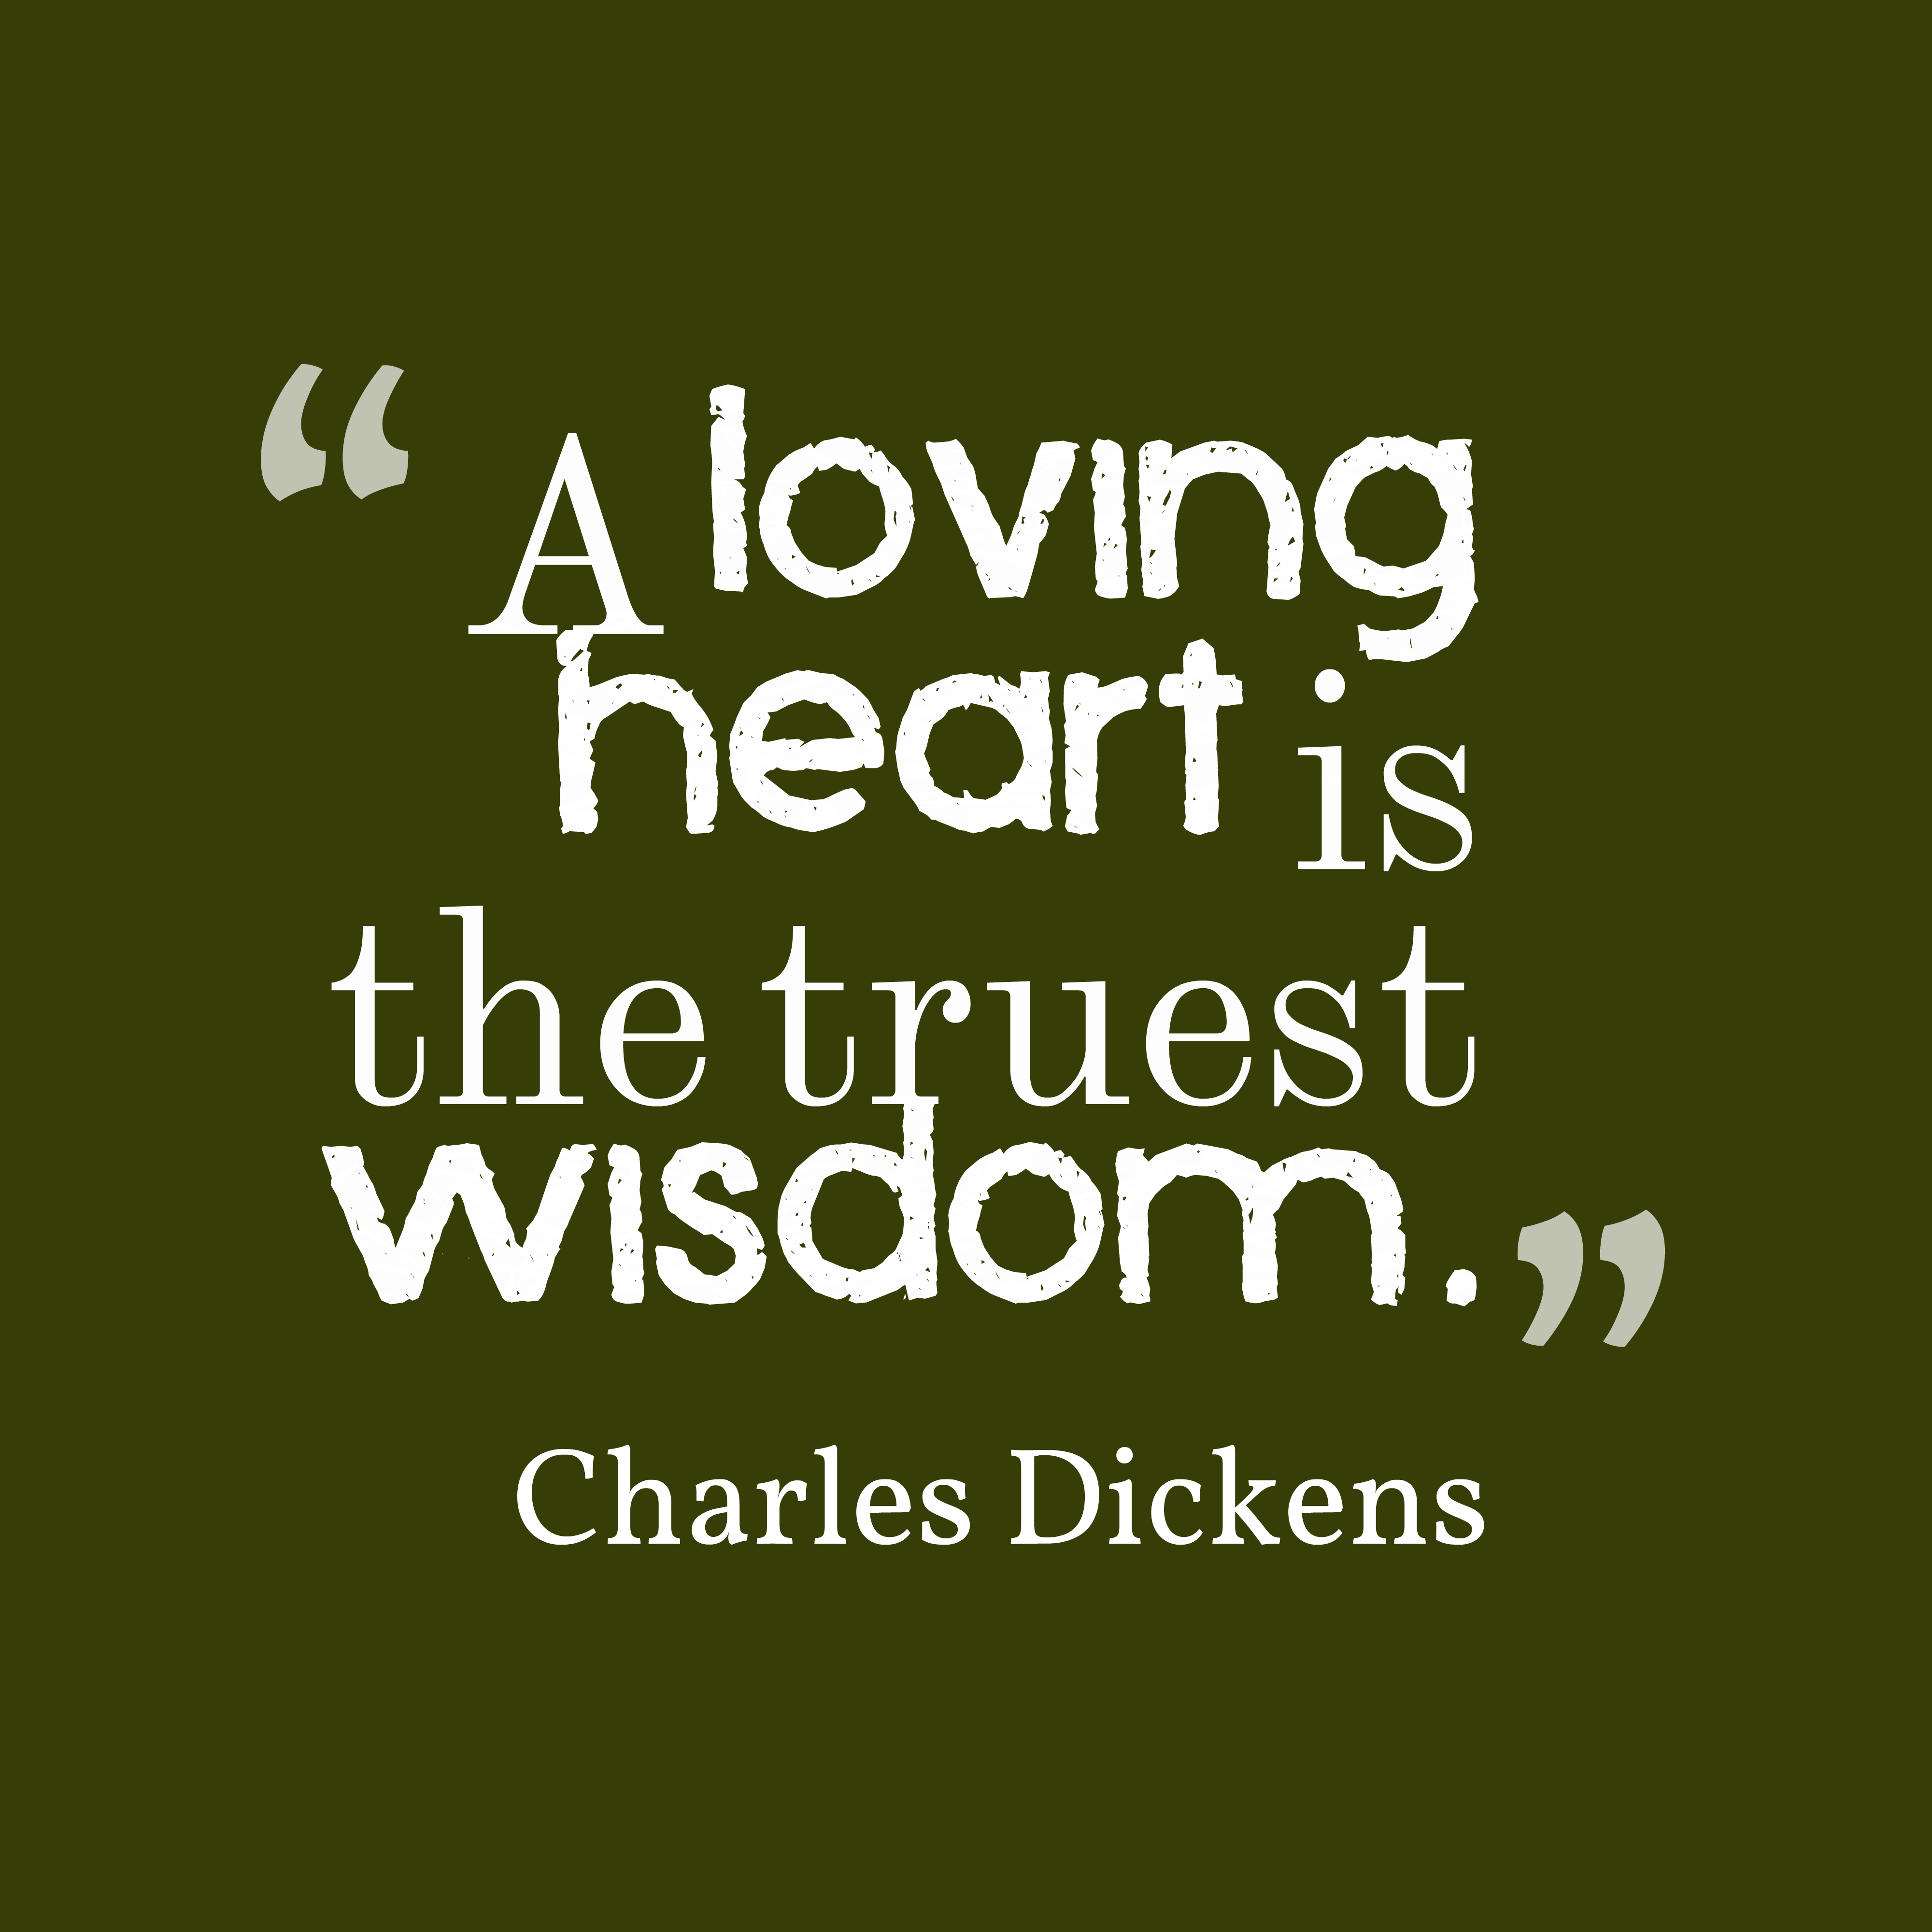 hi-res image of A loving heart is the truest wisdom.